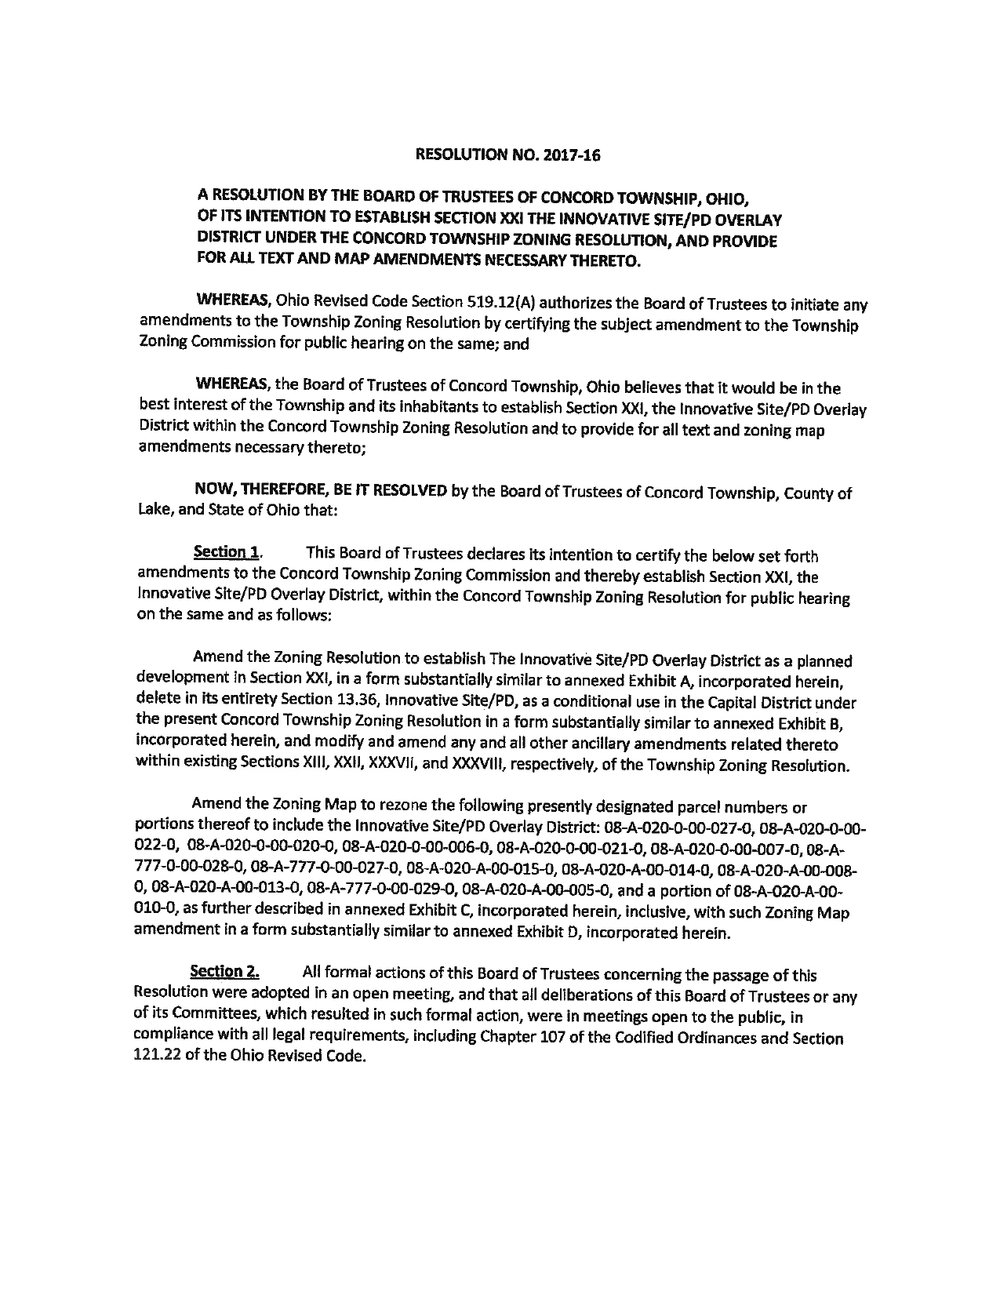 Resolution No_2017-16 w/Exhibits New Zoning Text